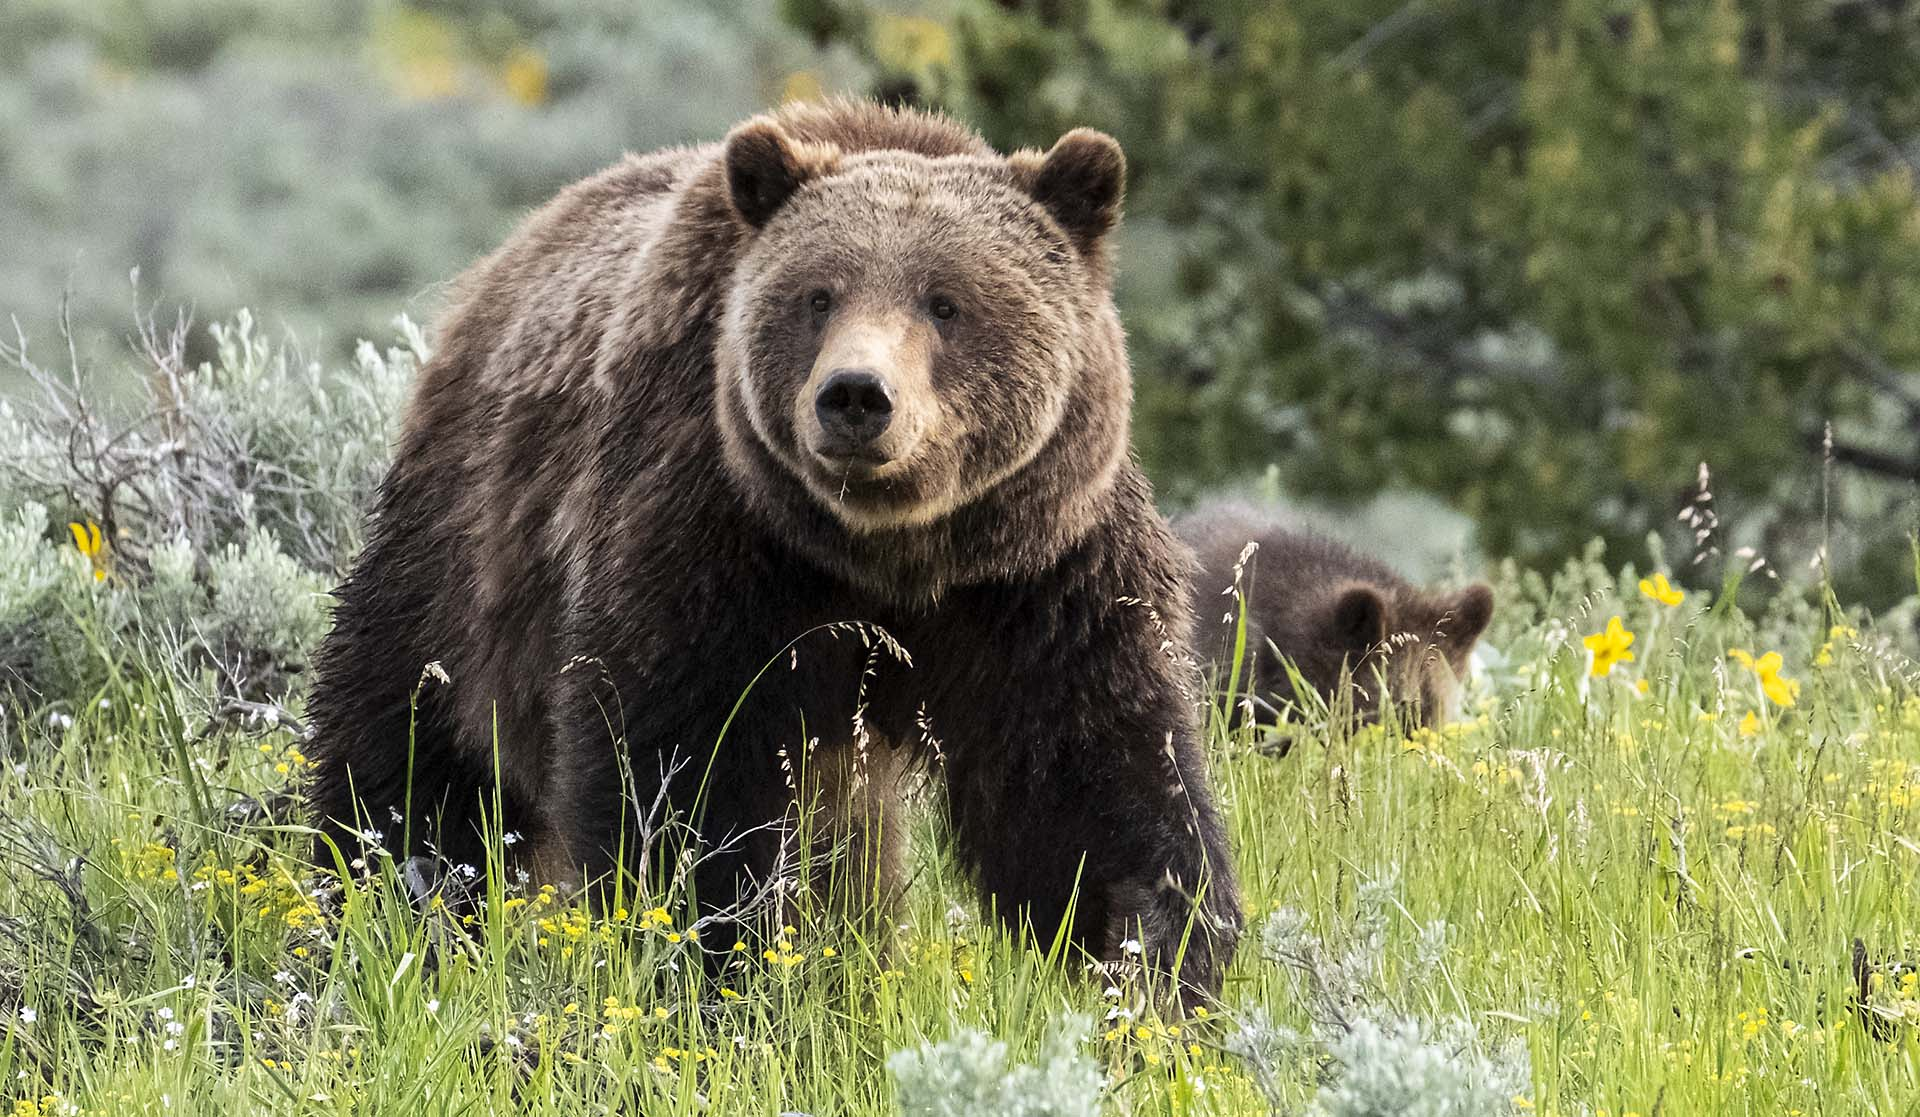 Grizzly Bear 399 with her Cub, Grand Teton National Park